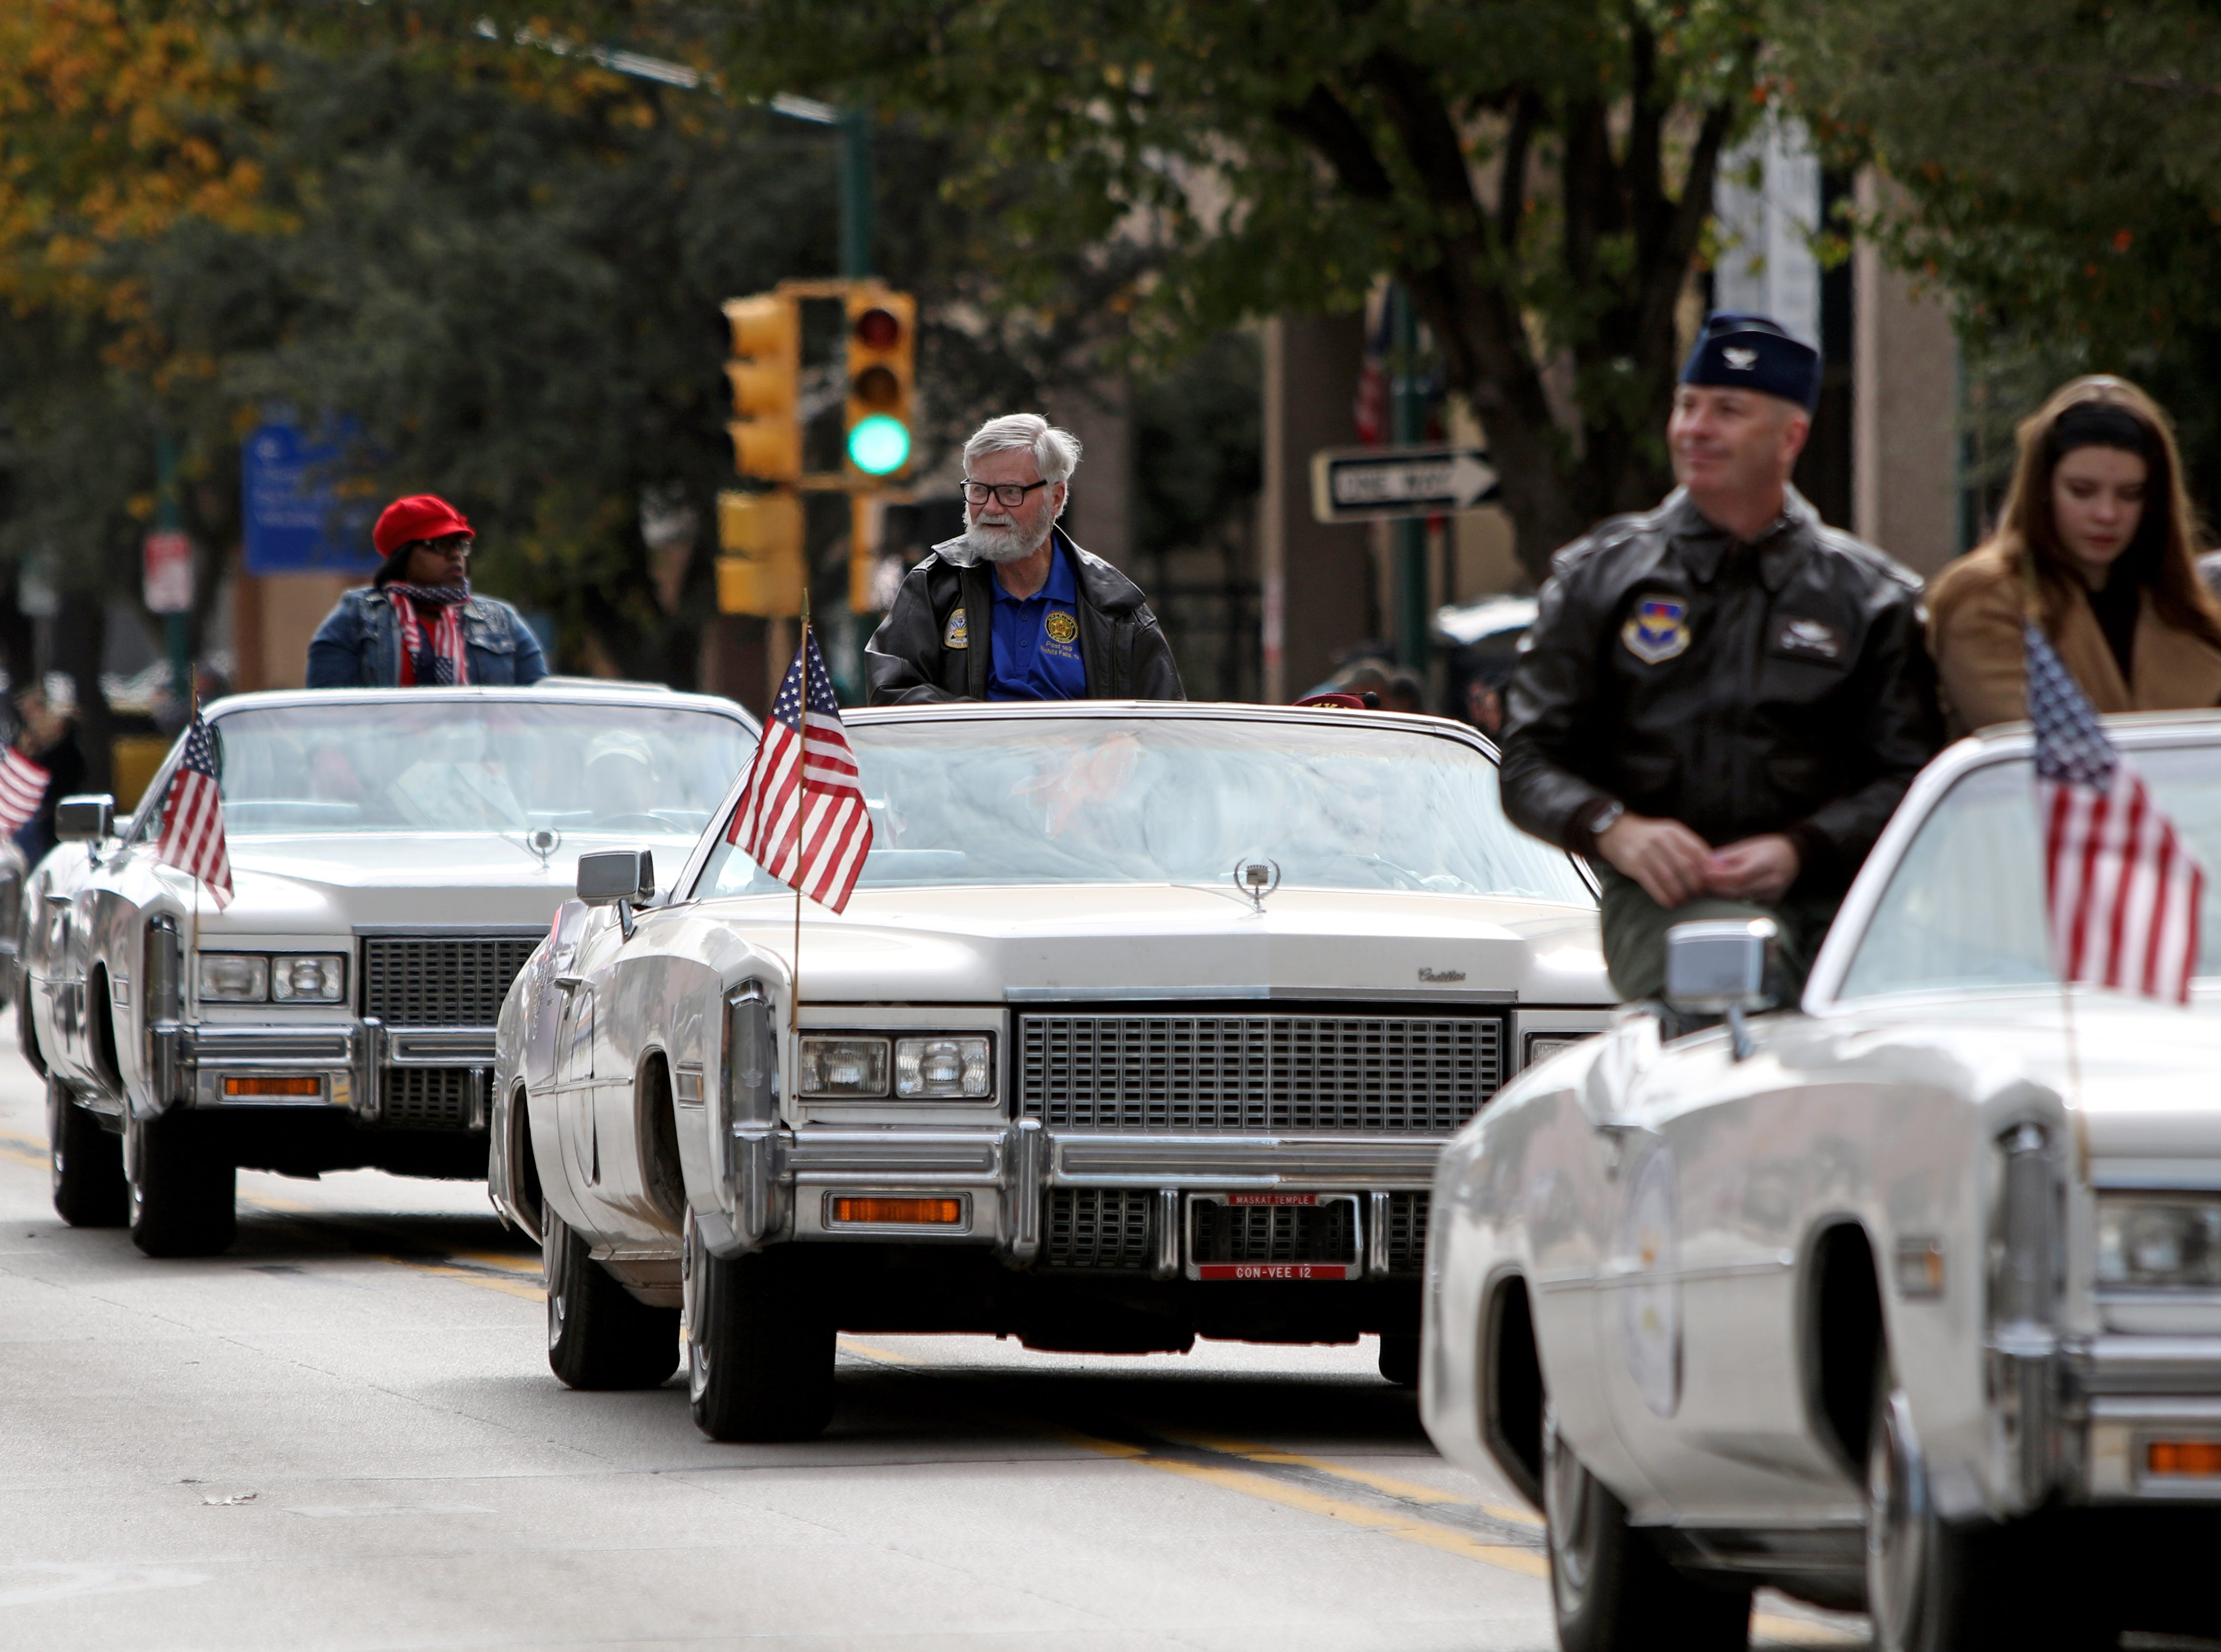 Wichita Falls dignitaries lead the Veterans Day parade Saturday, Nov. 10, 2018, in downtown Wichita Falls on the 100th anniversary of the Armistice of Compiègne that ended fighting in World War I.